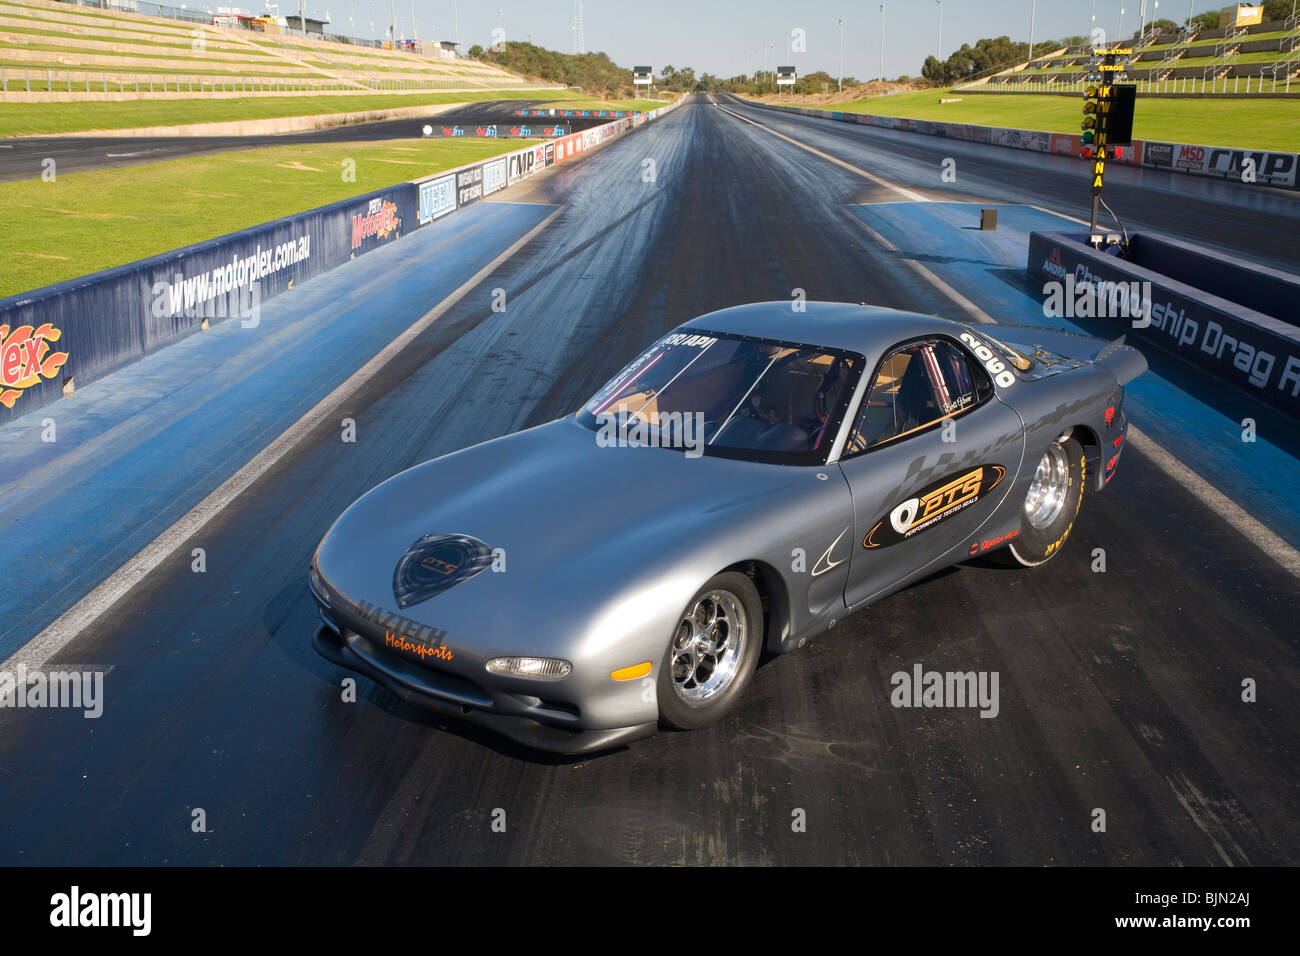 Enchanting Race Cars For Sale Perth Pictures - Classic Cars Ideas ...